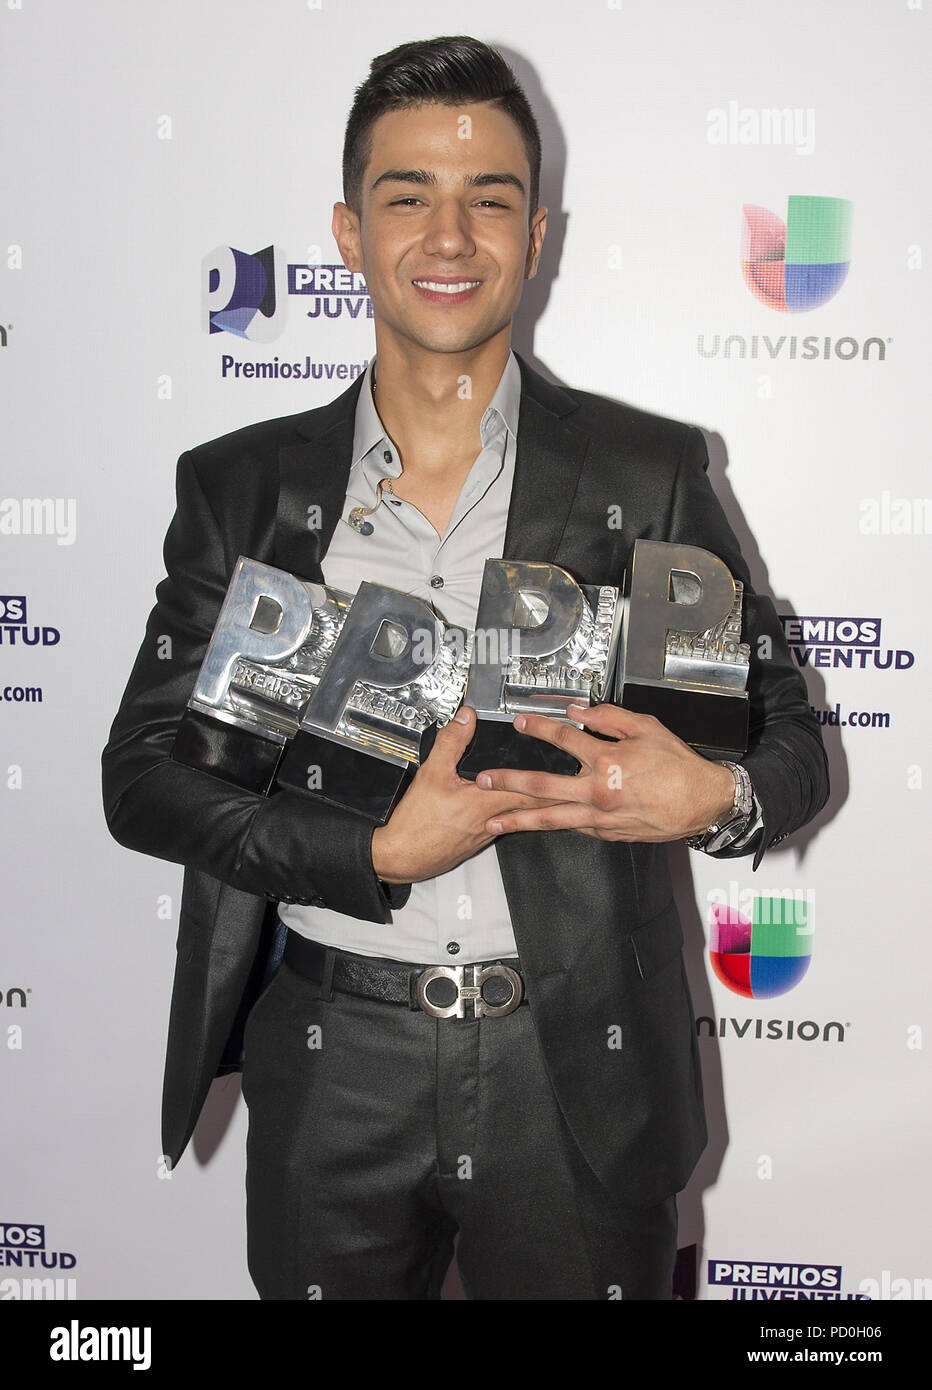 Luis coronel stock photos luis coronel stock images alamy miami fl july 16 luis coronel attends univisions premios juventud 2015 at bank m4hsunfo